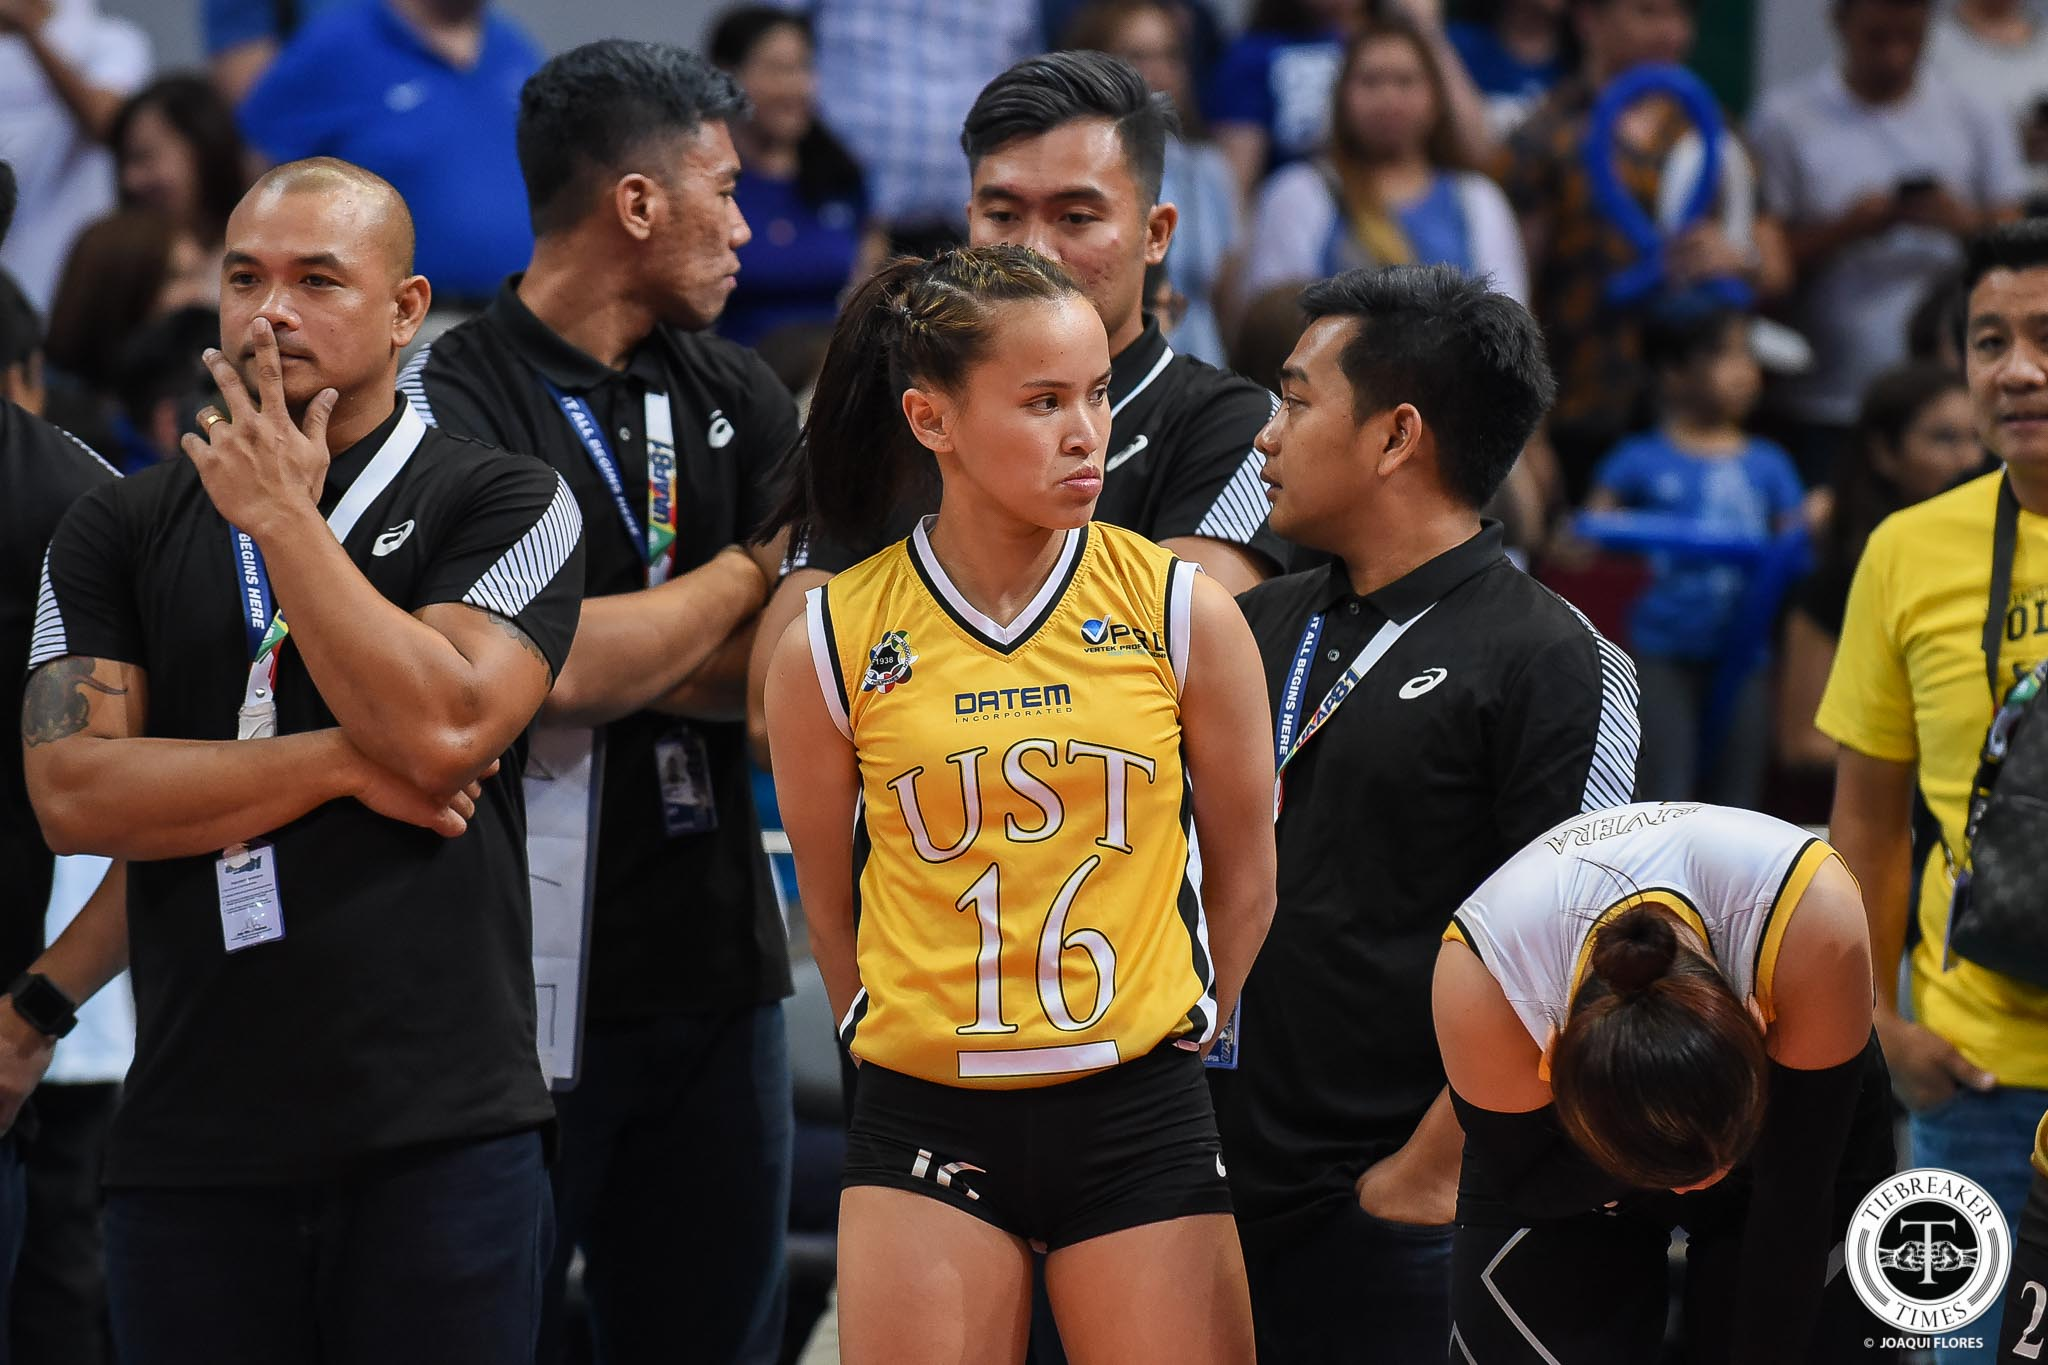 Tiebreaker Times Sisi Rondina vows to keep fighting until final point Basketball News UAAP UST Volleyball  UST Women's Volleyball UAAP Season 81 Women's Volleyball UAAP Season 81 Cherry Rondina